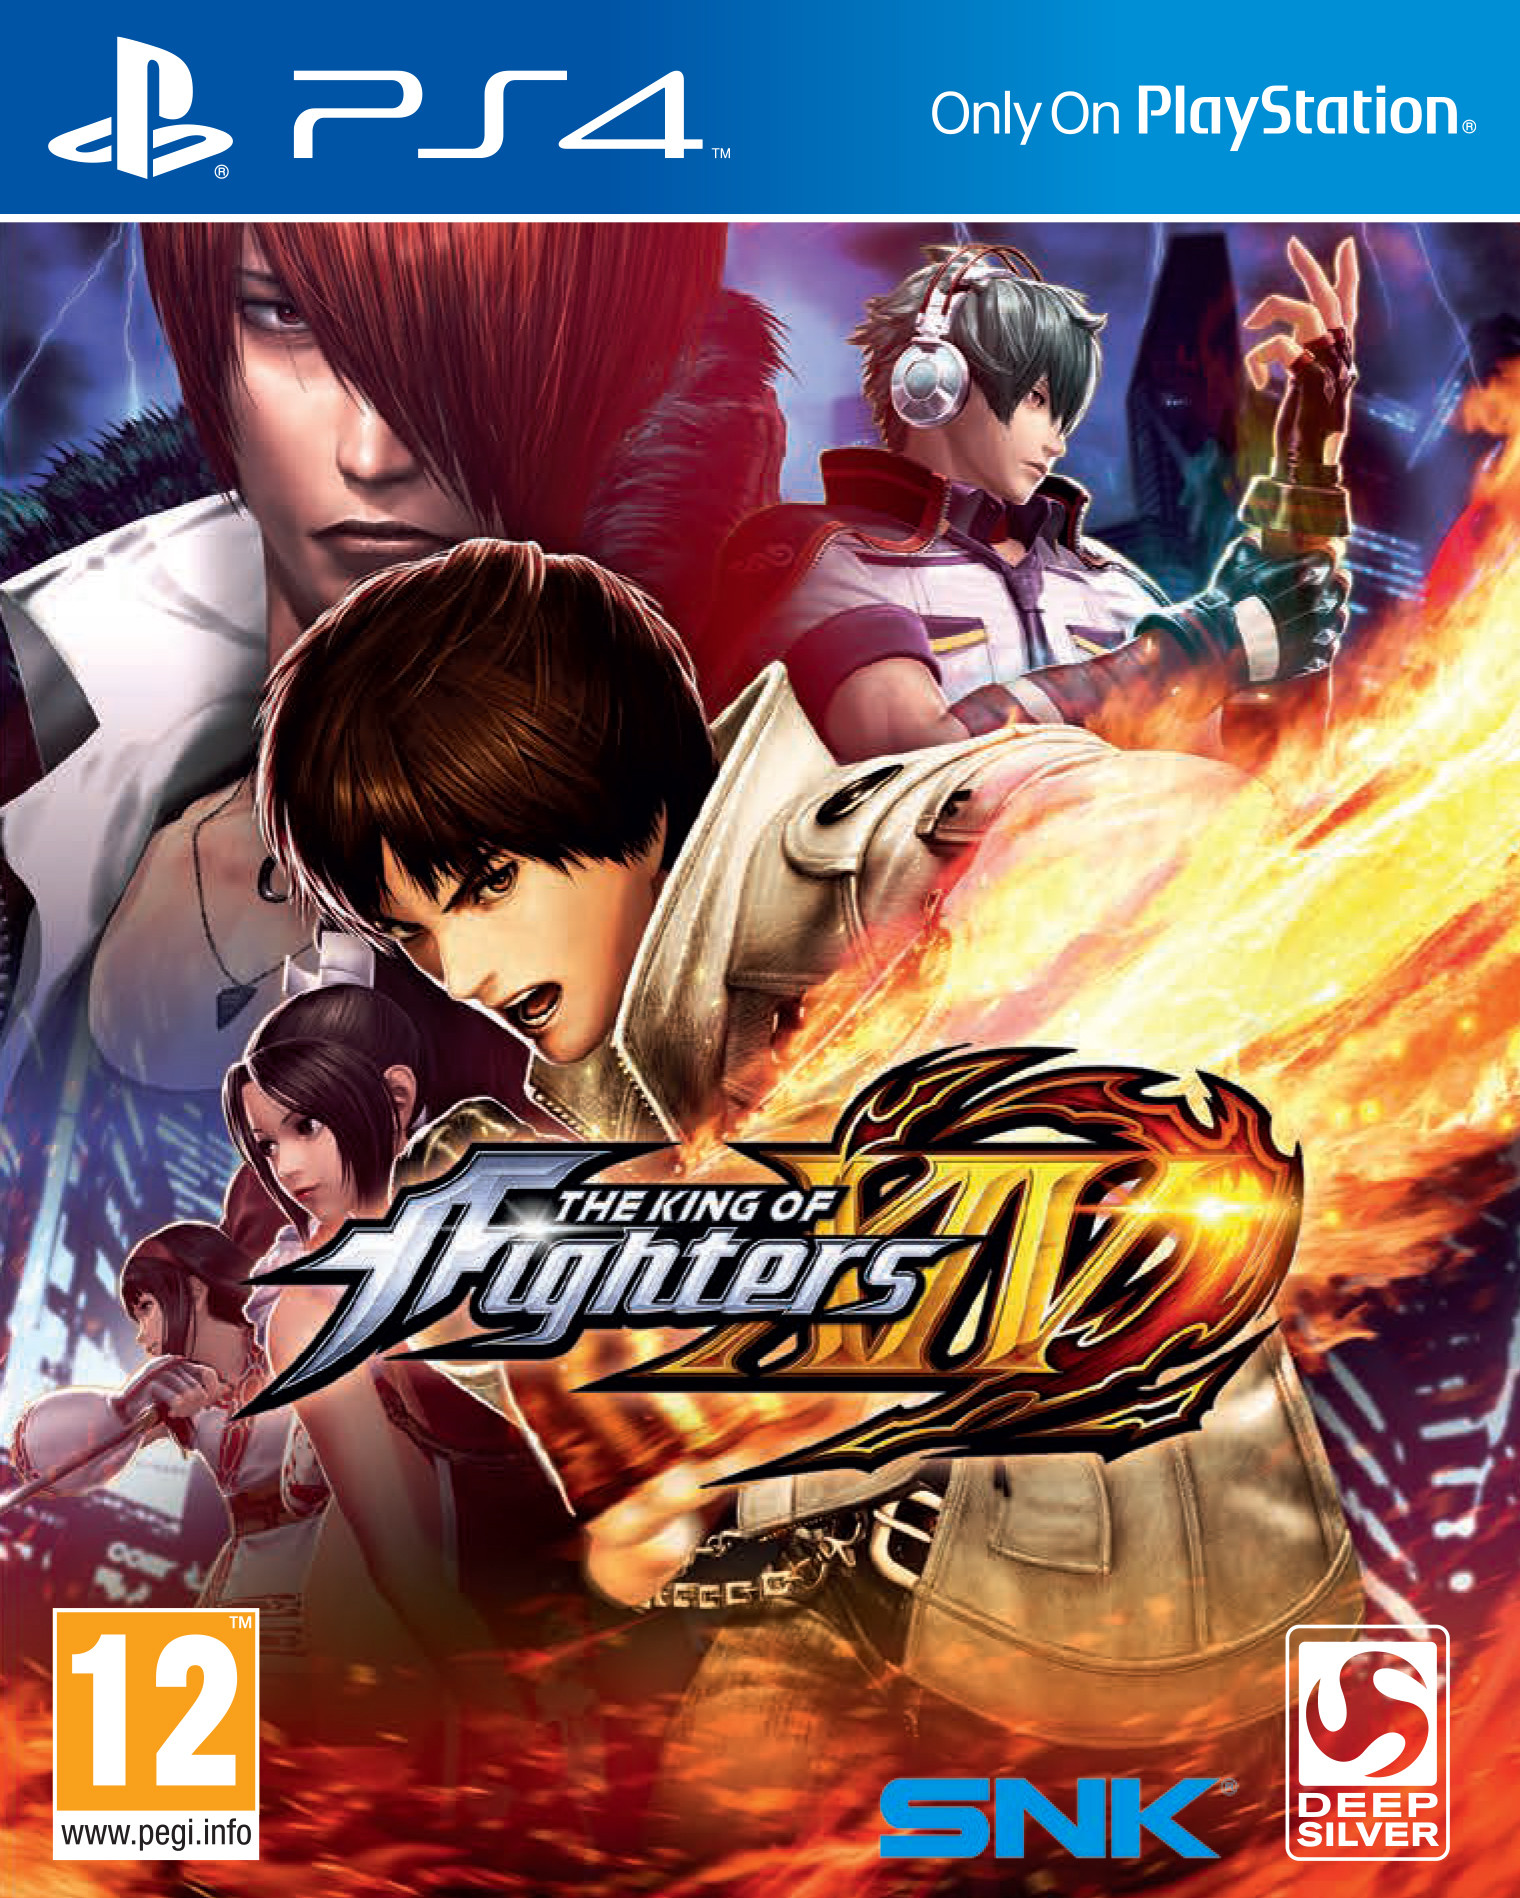 The King of Fighters XIV [PS4 Exclusive] 5.05 / 6.72 / 7.02 [EUR] (2016) [Английский] (v1.00)